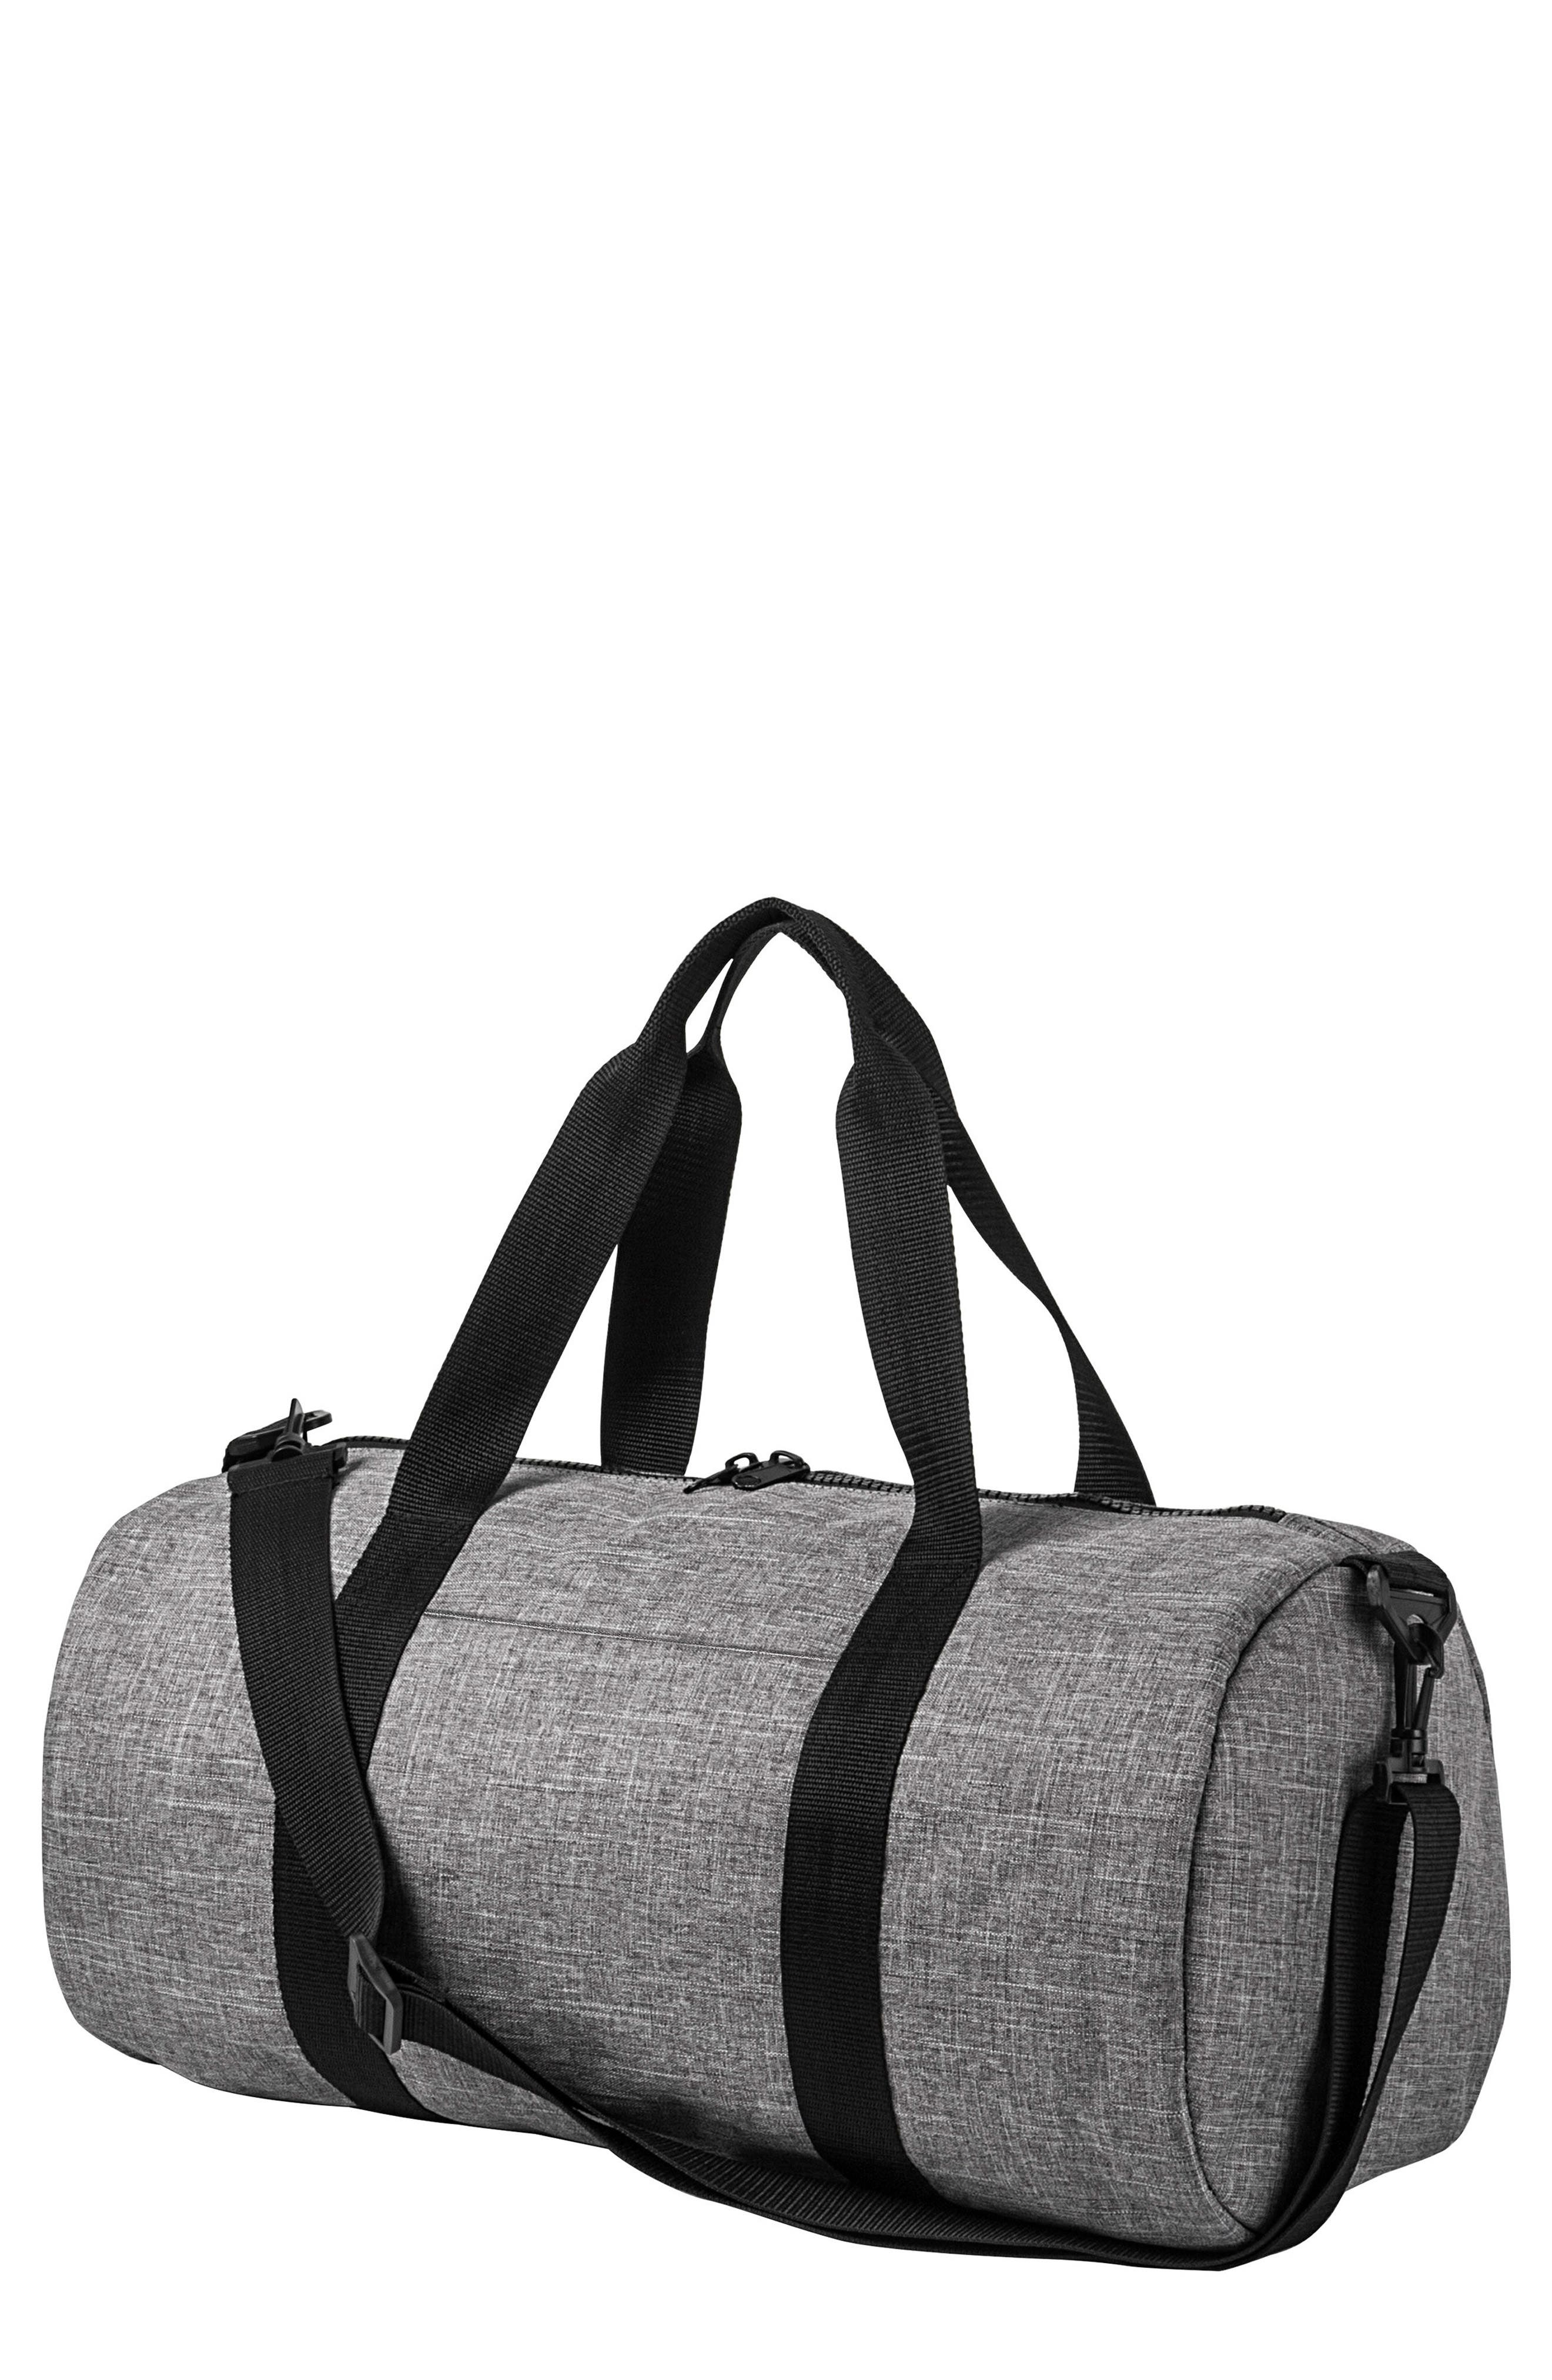 Monogram Duffel Bag,                         Main,                         color, GREY